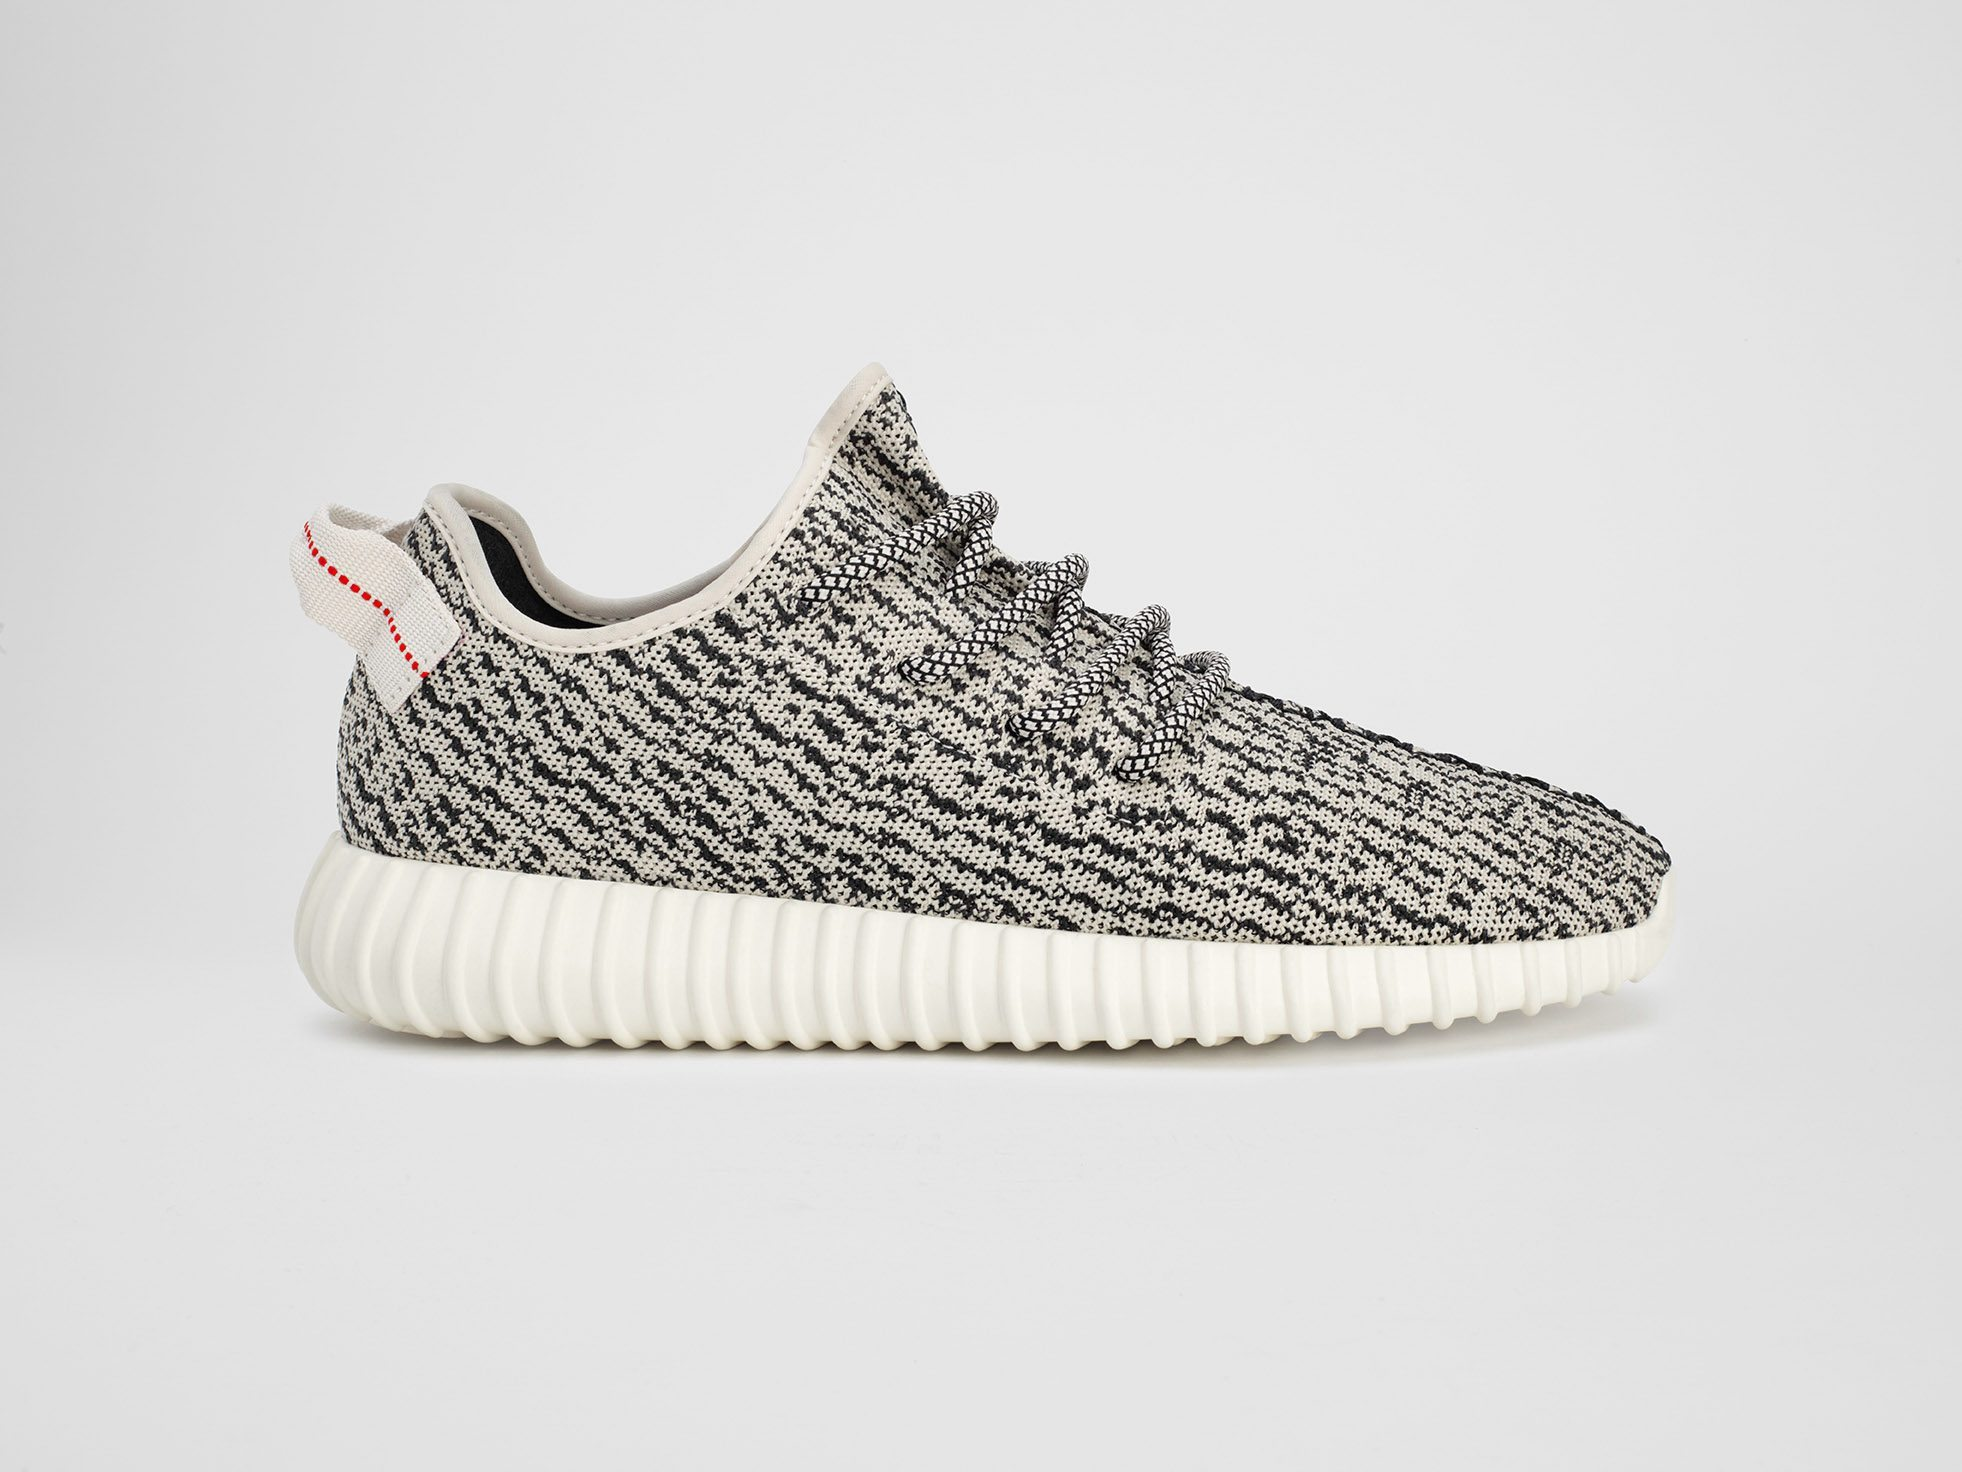 Kanye West x adidas Originals Yeezy Boost 350 1